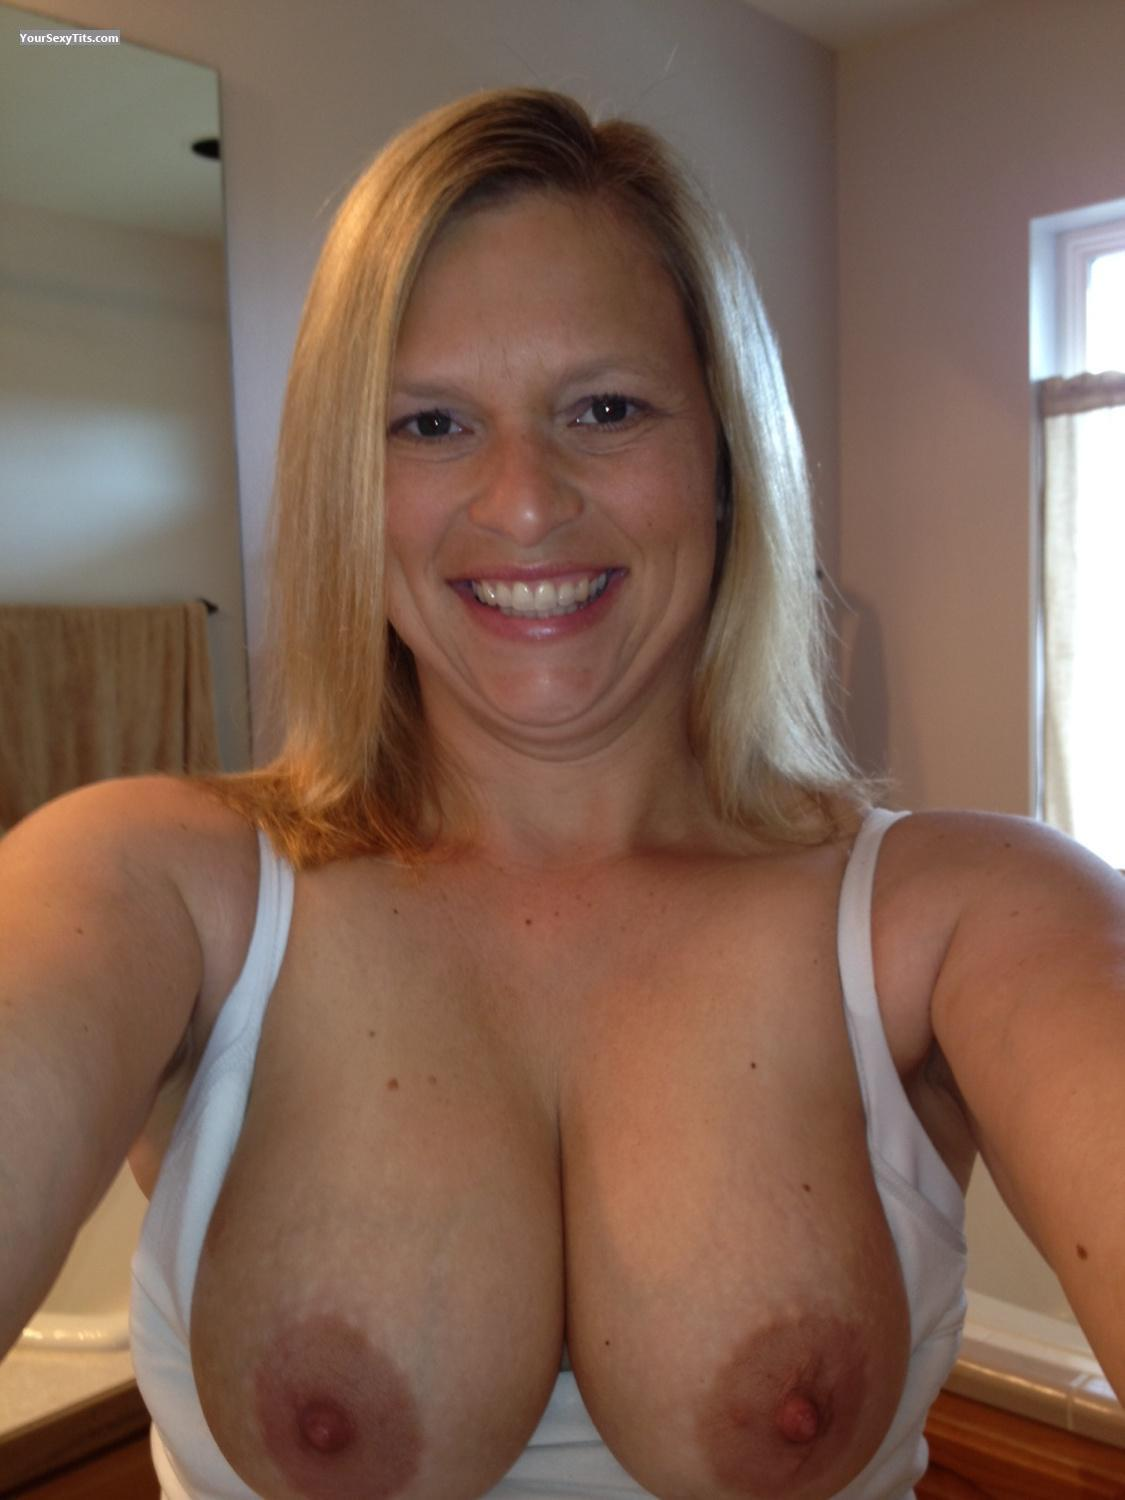 gagging-face-my-topless-pics